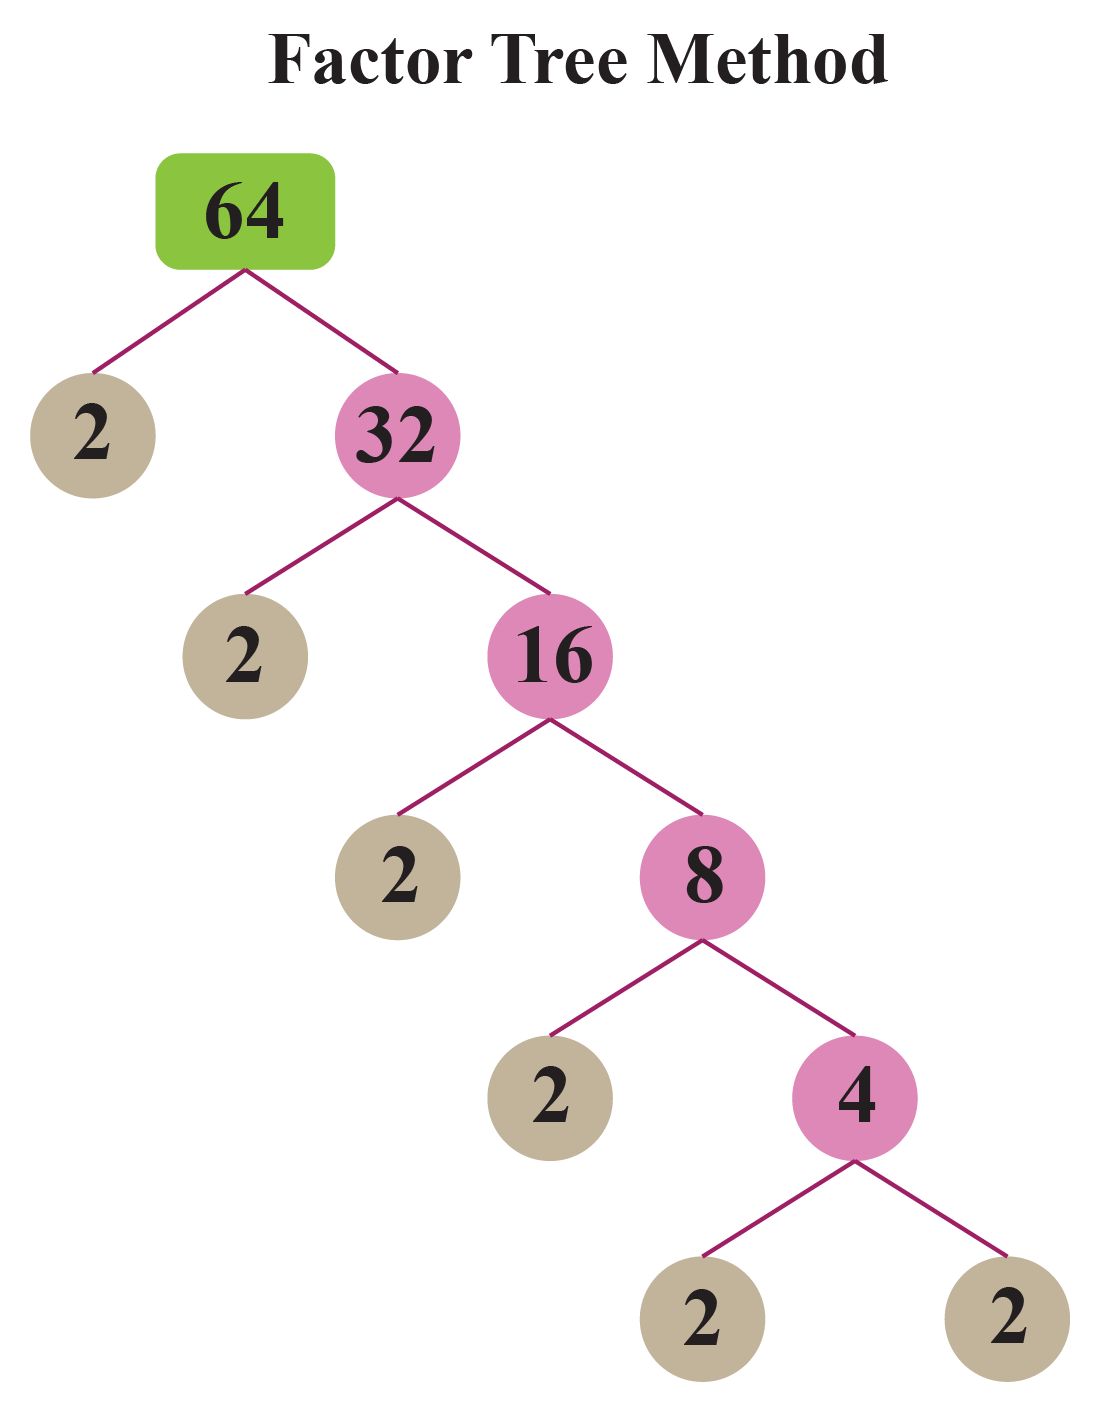 Factor Tree of 64